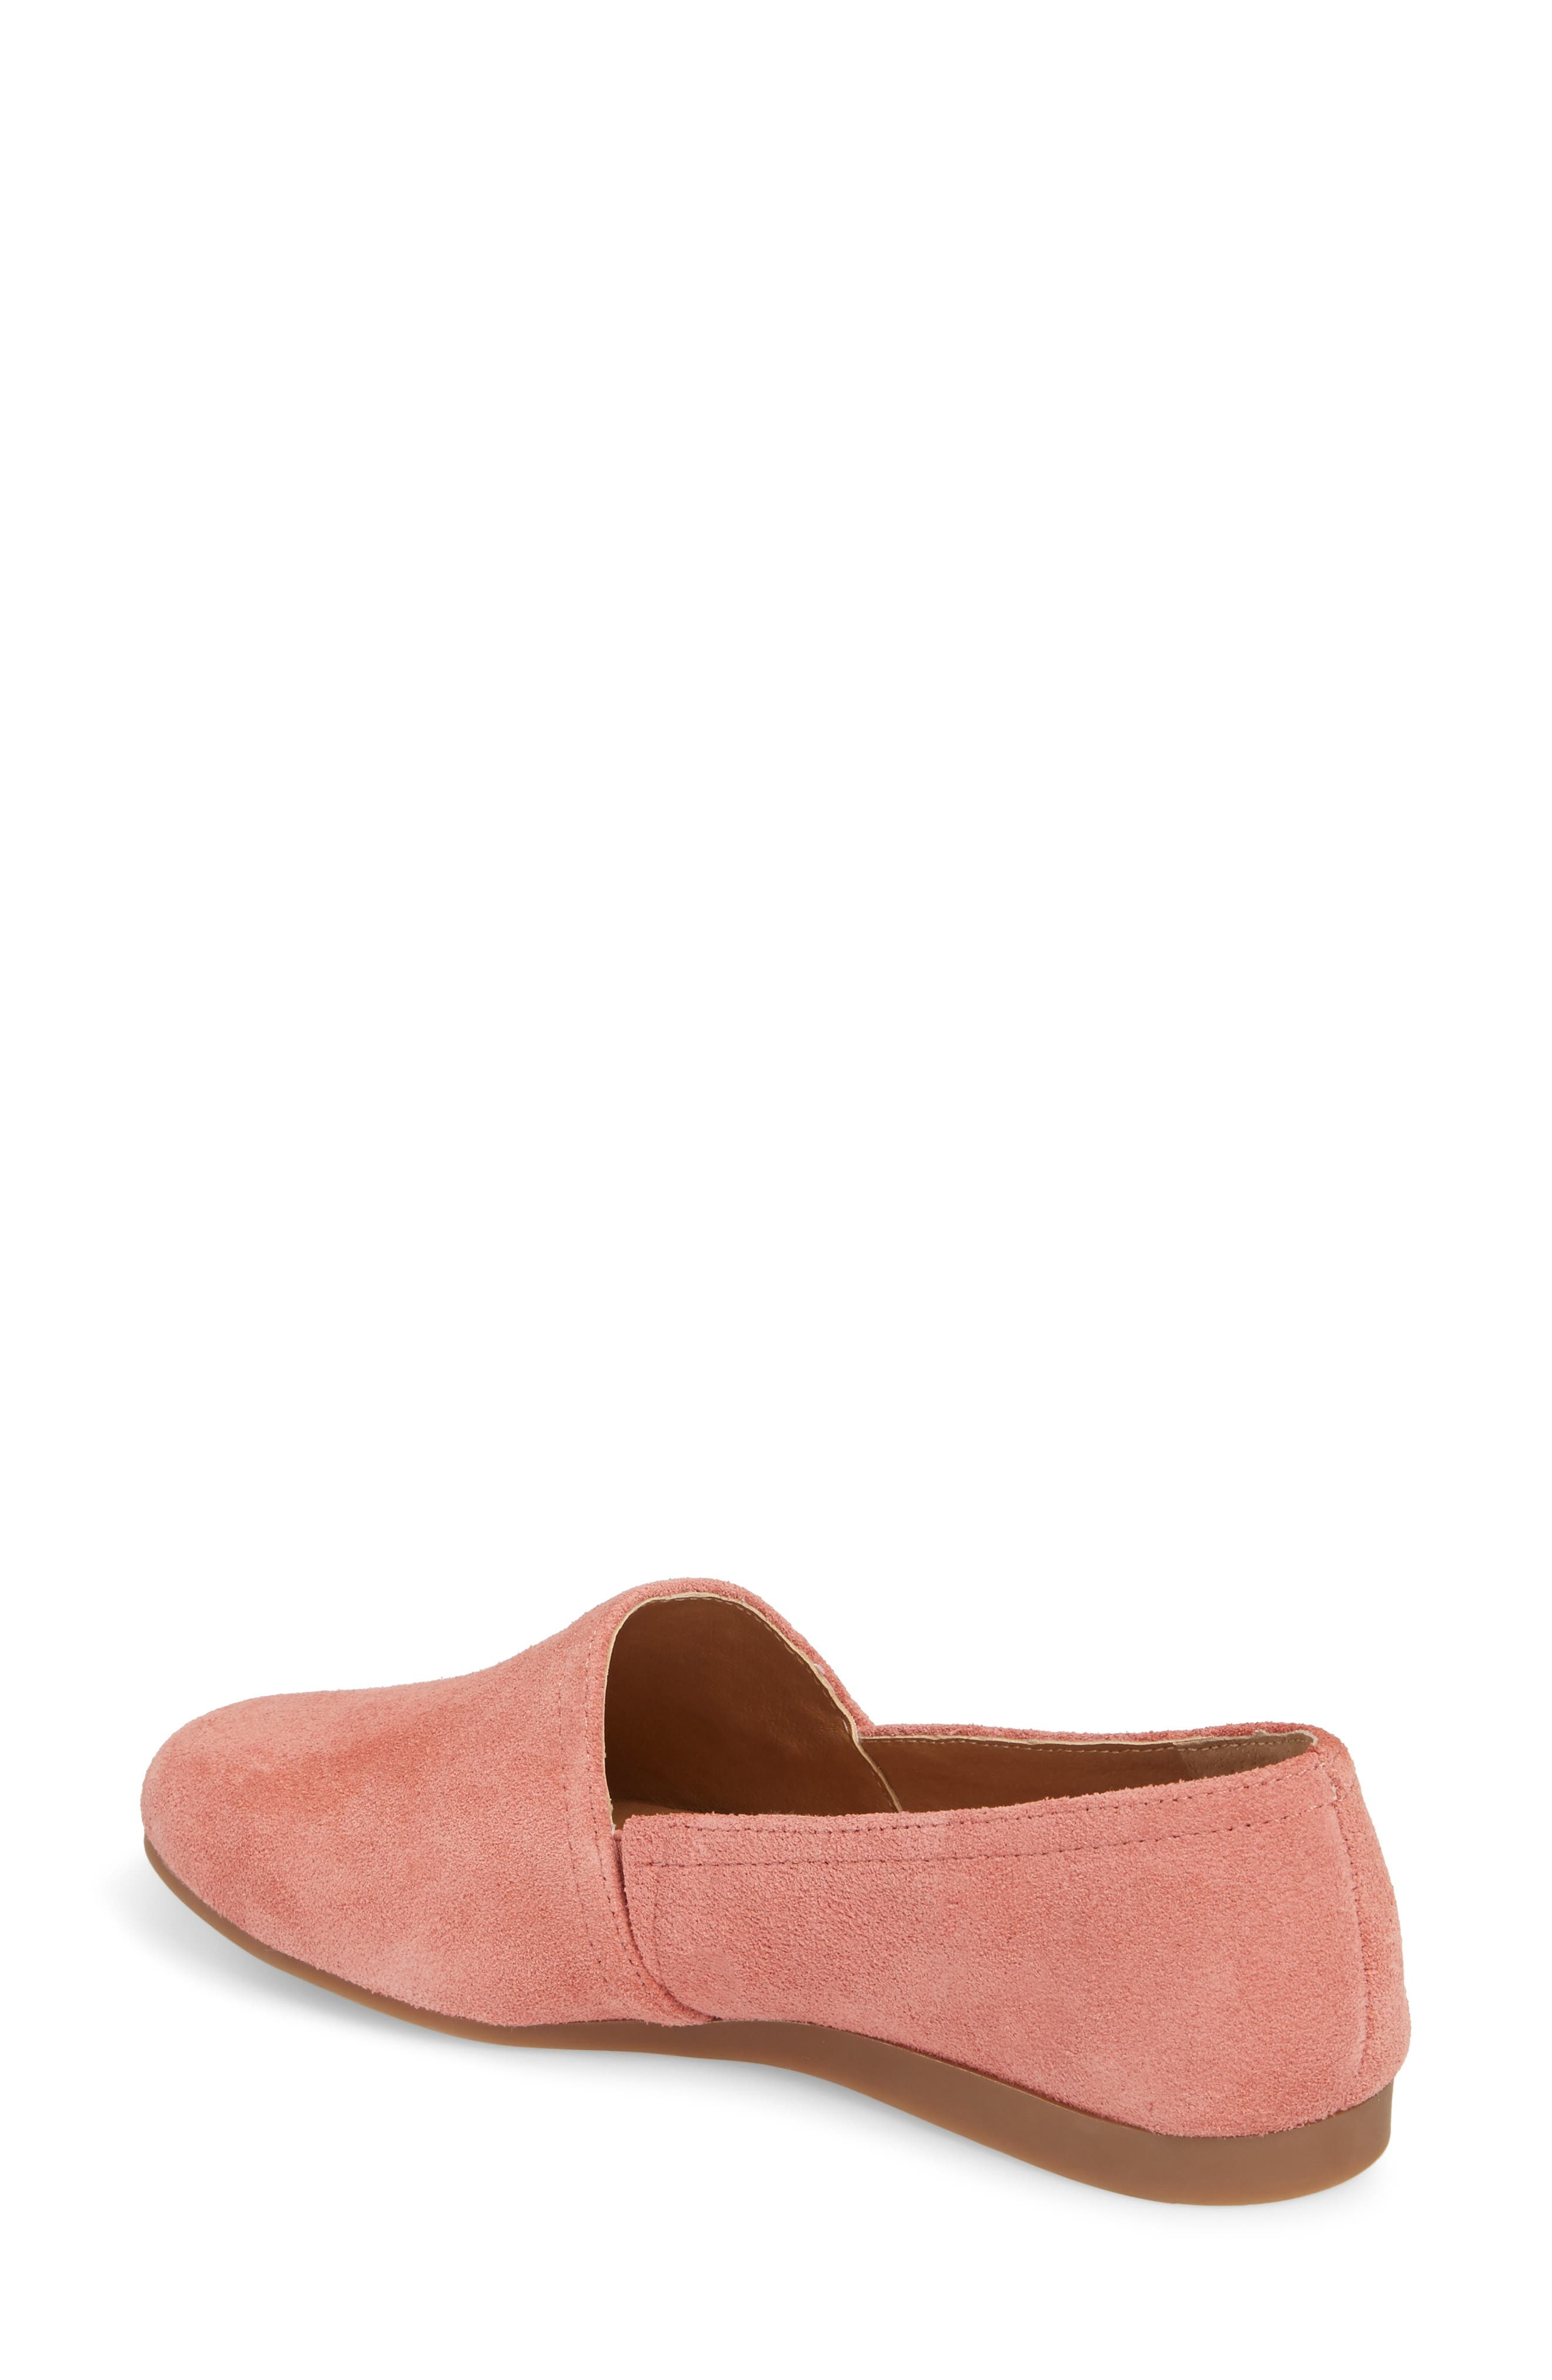 Brettany Loafer,                             Alternate thumbnail 2, color,                             Canyon Rose Suede